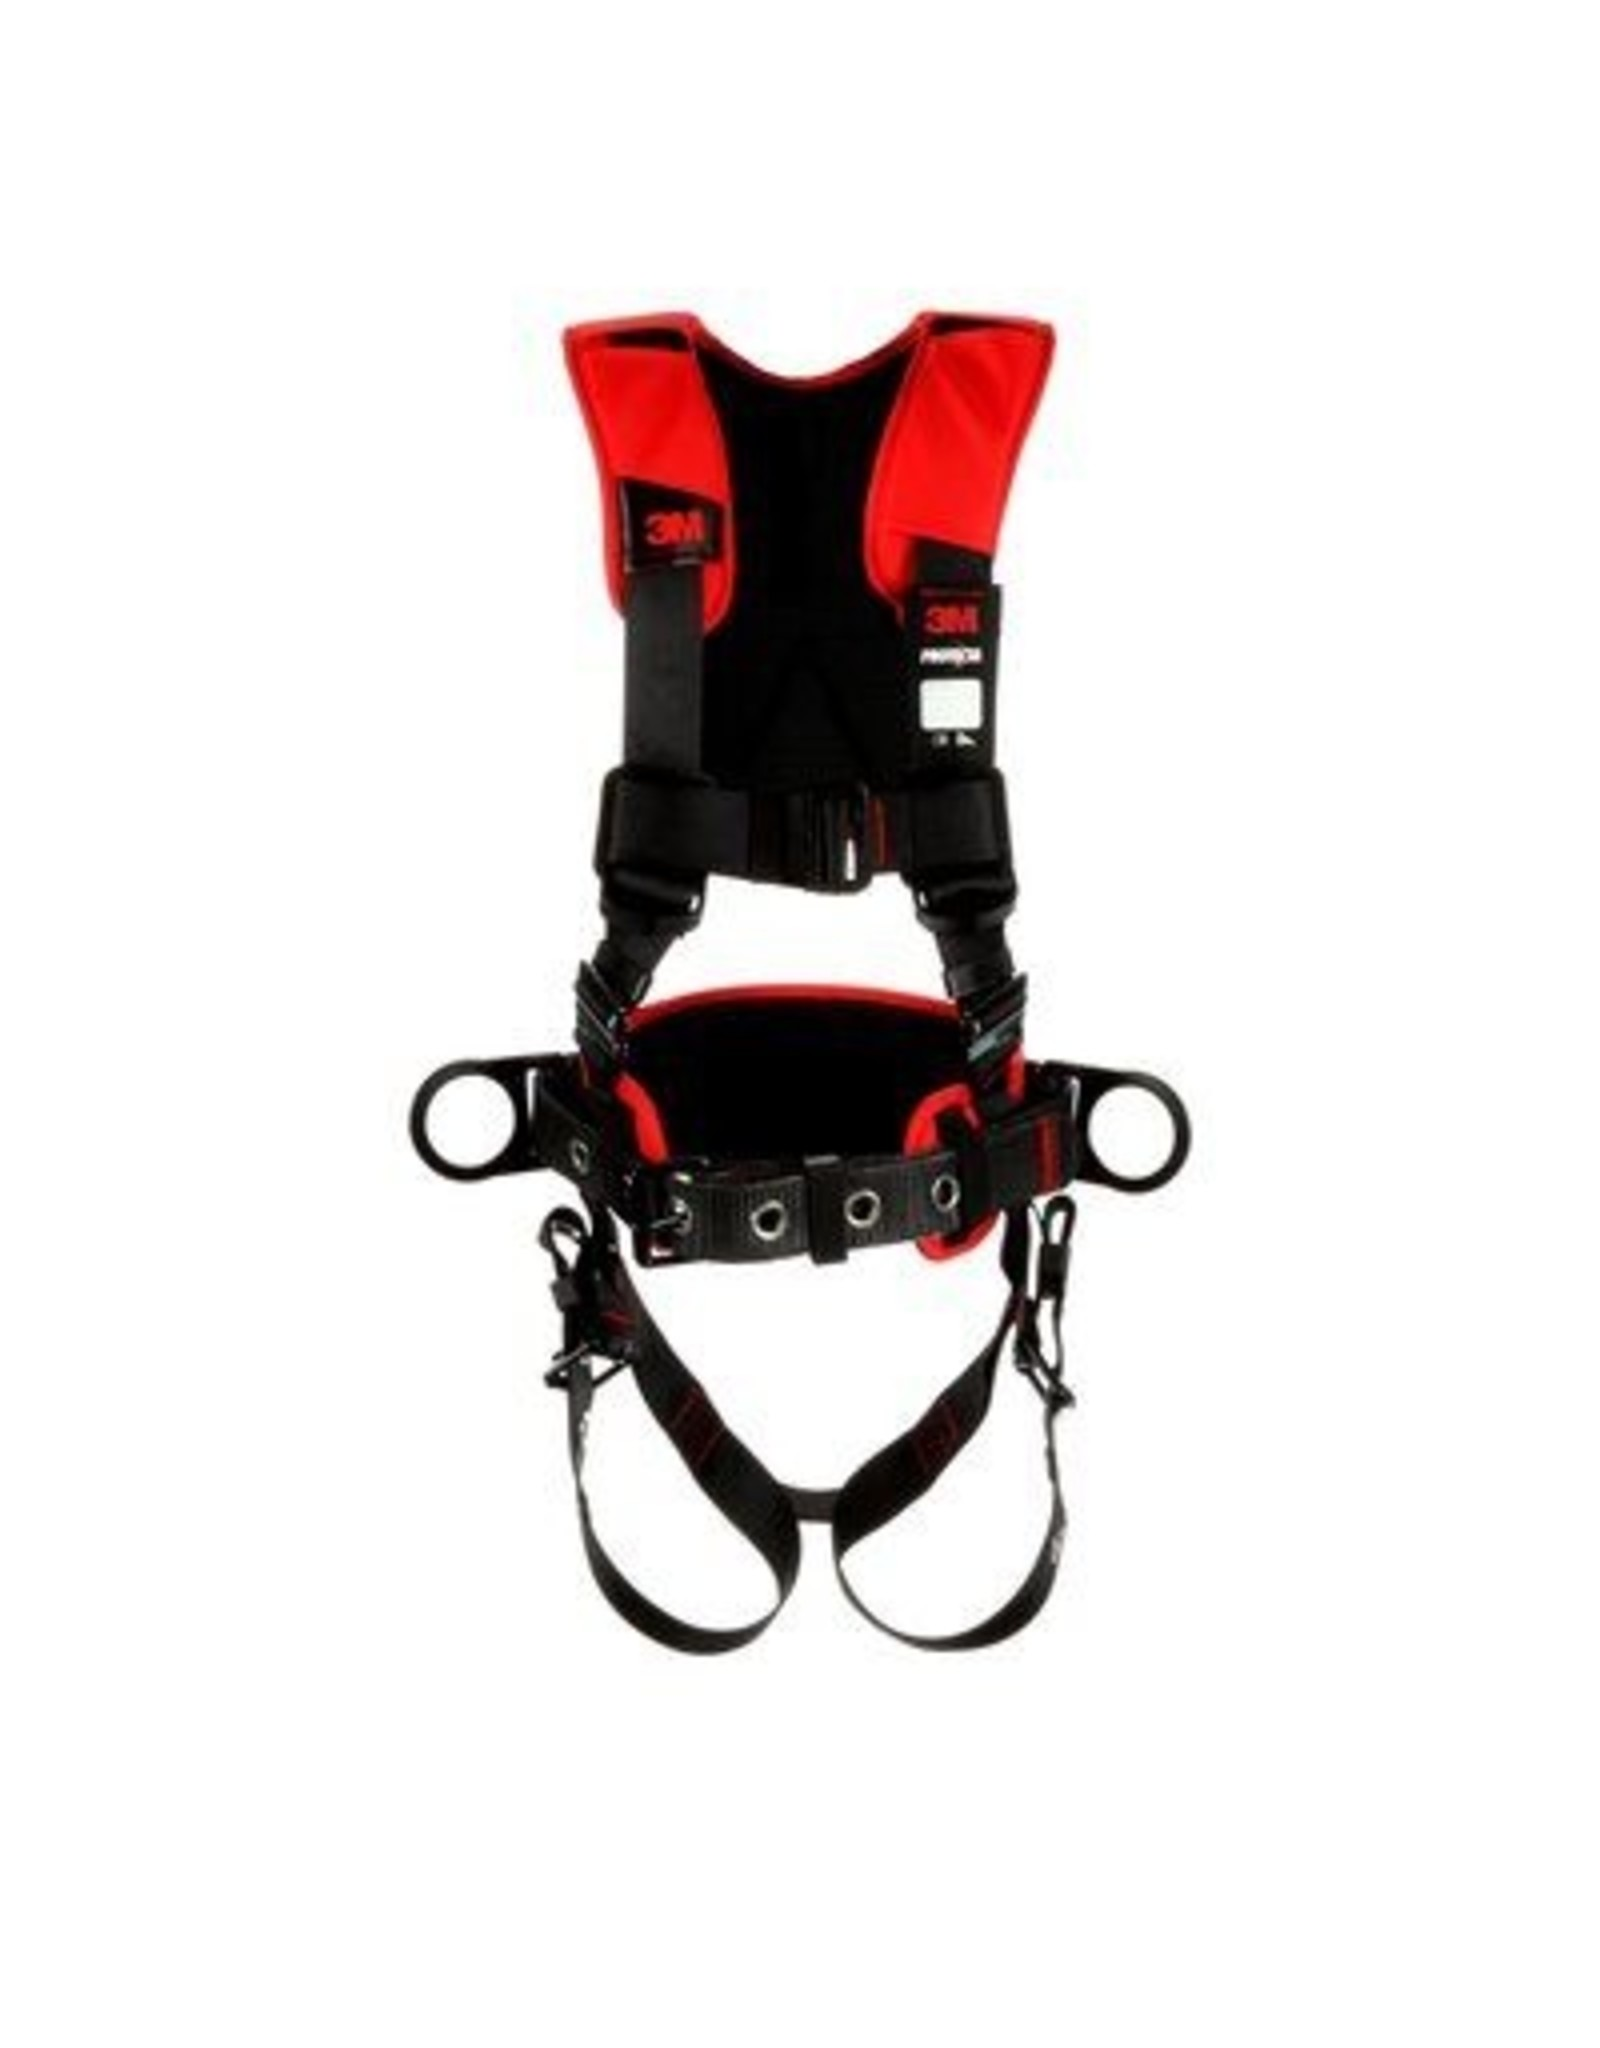 3M Protecta Comfort Construction Style Positioning Harness M/L